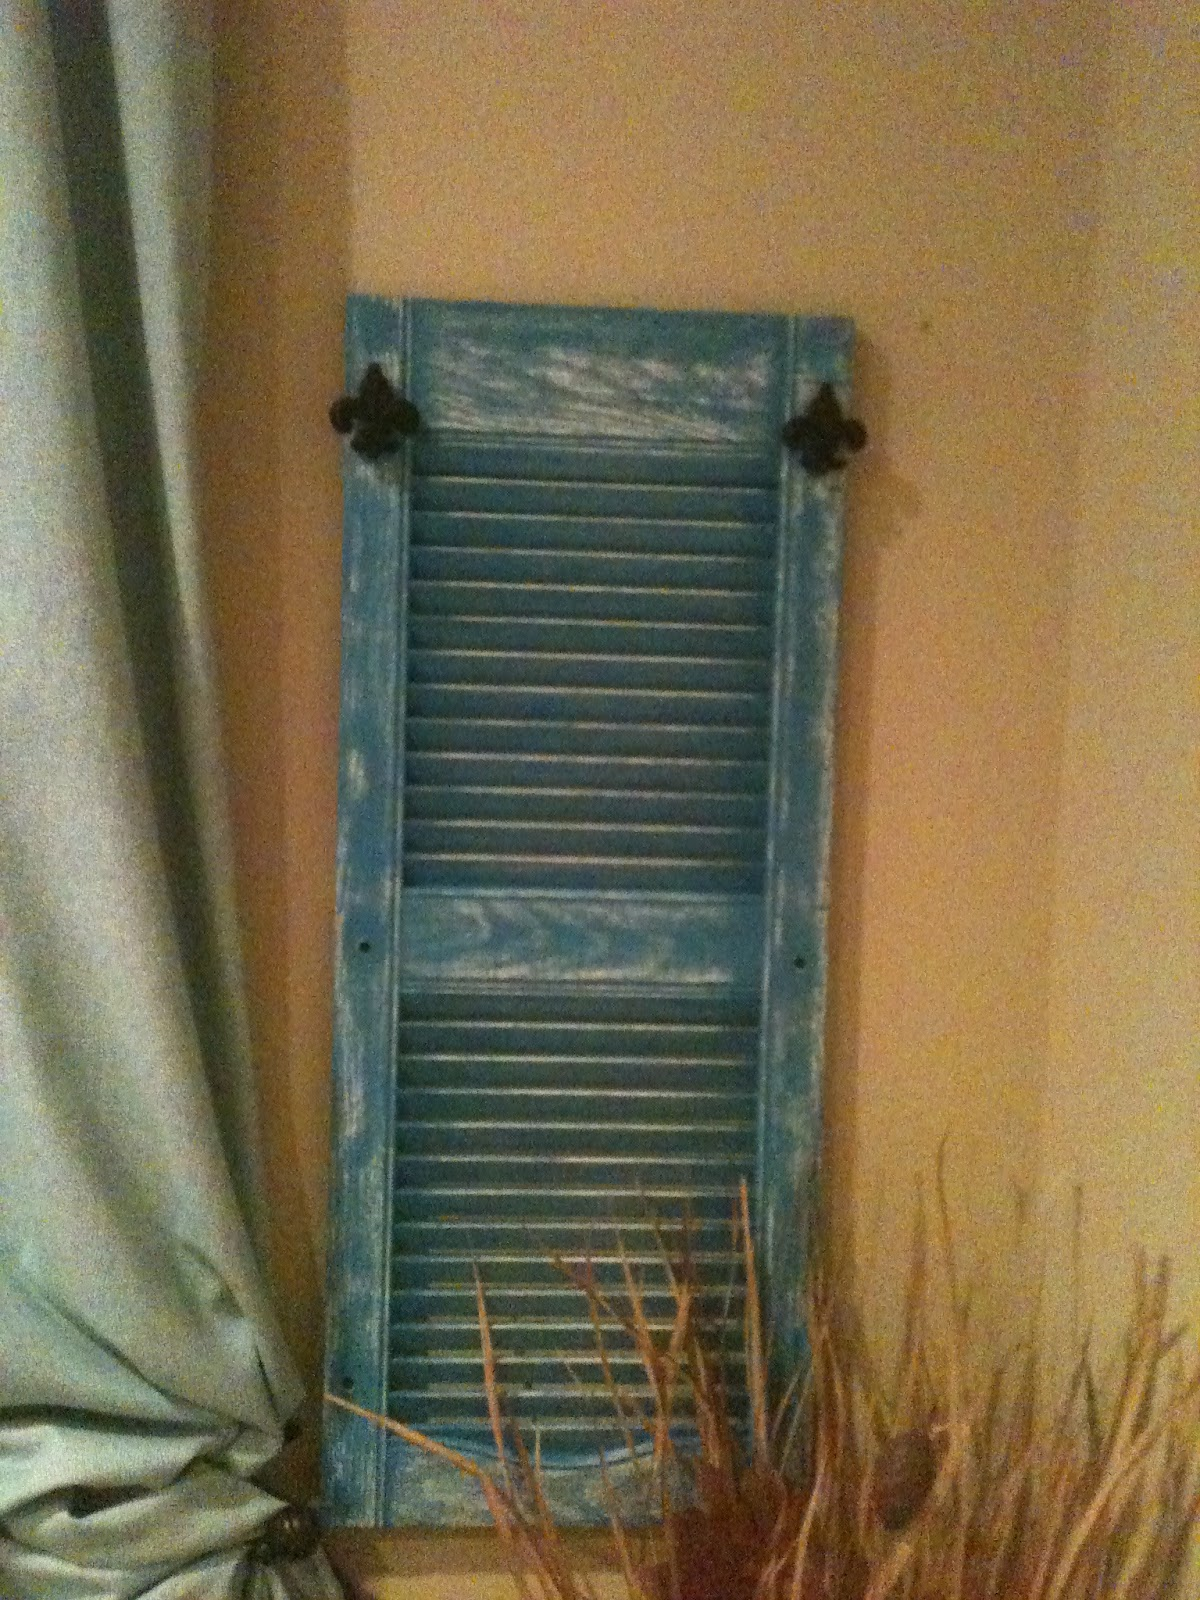 Furniture By Mk Designs Distressed Shutters With Style